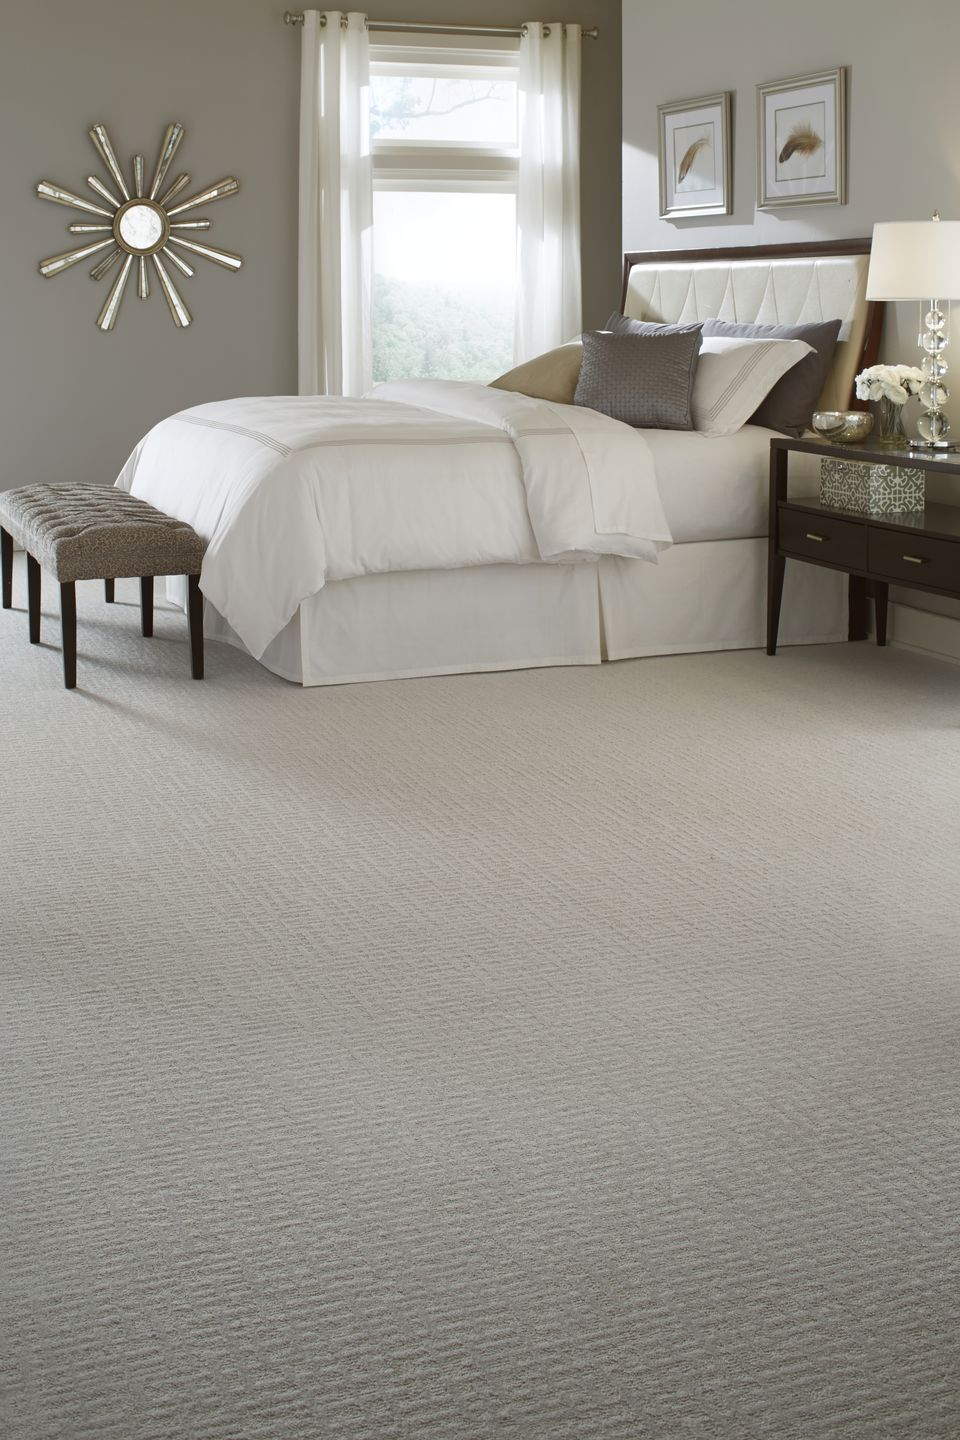 Carpet color trends for 2016 carpet vidalondon for Trendy bedrooms 2016